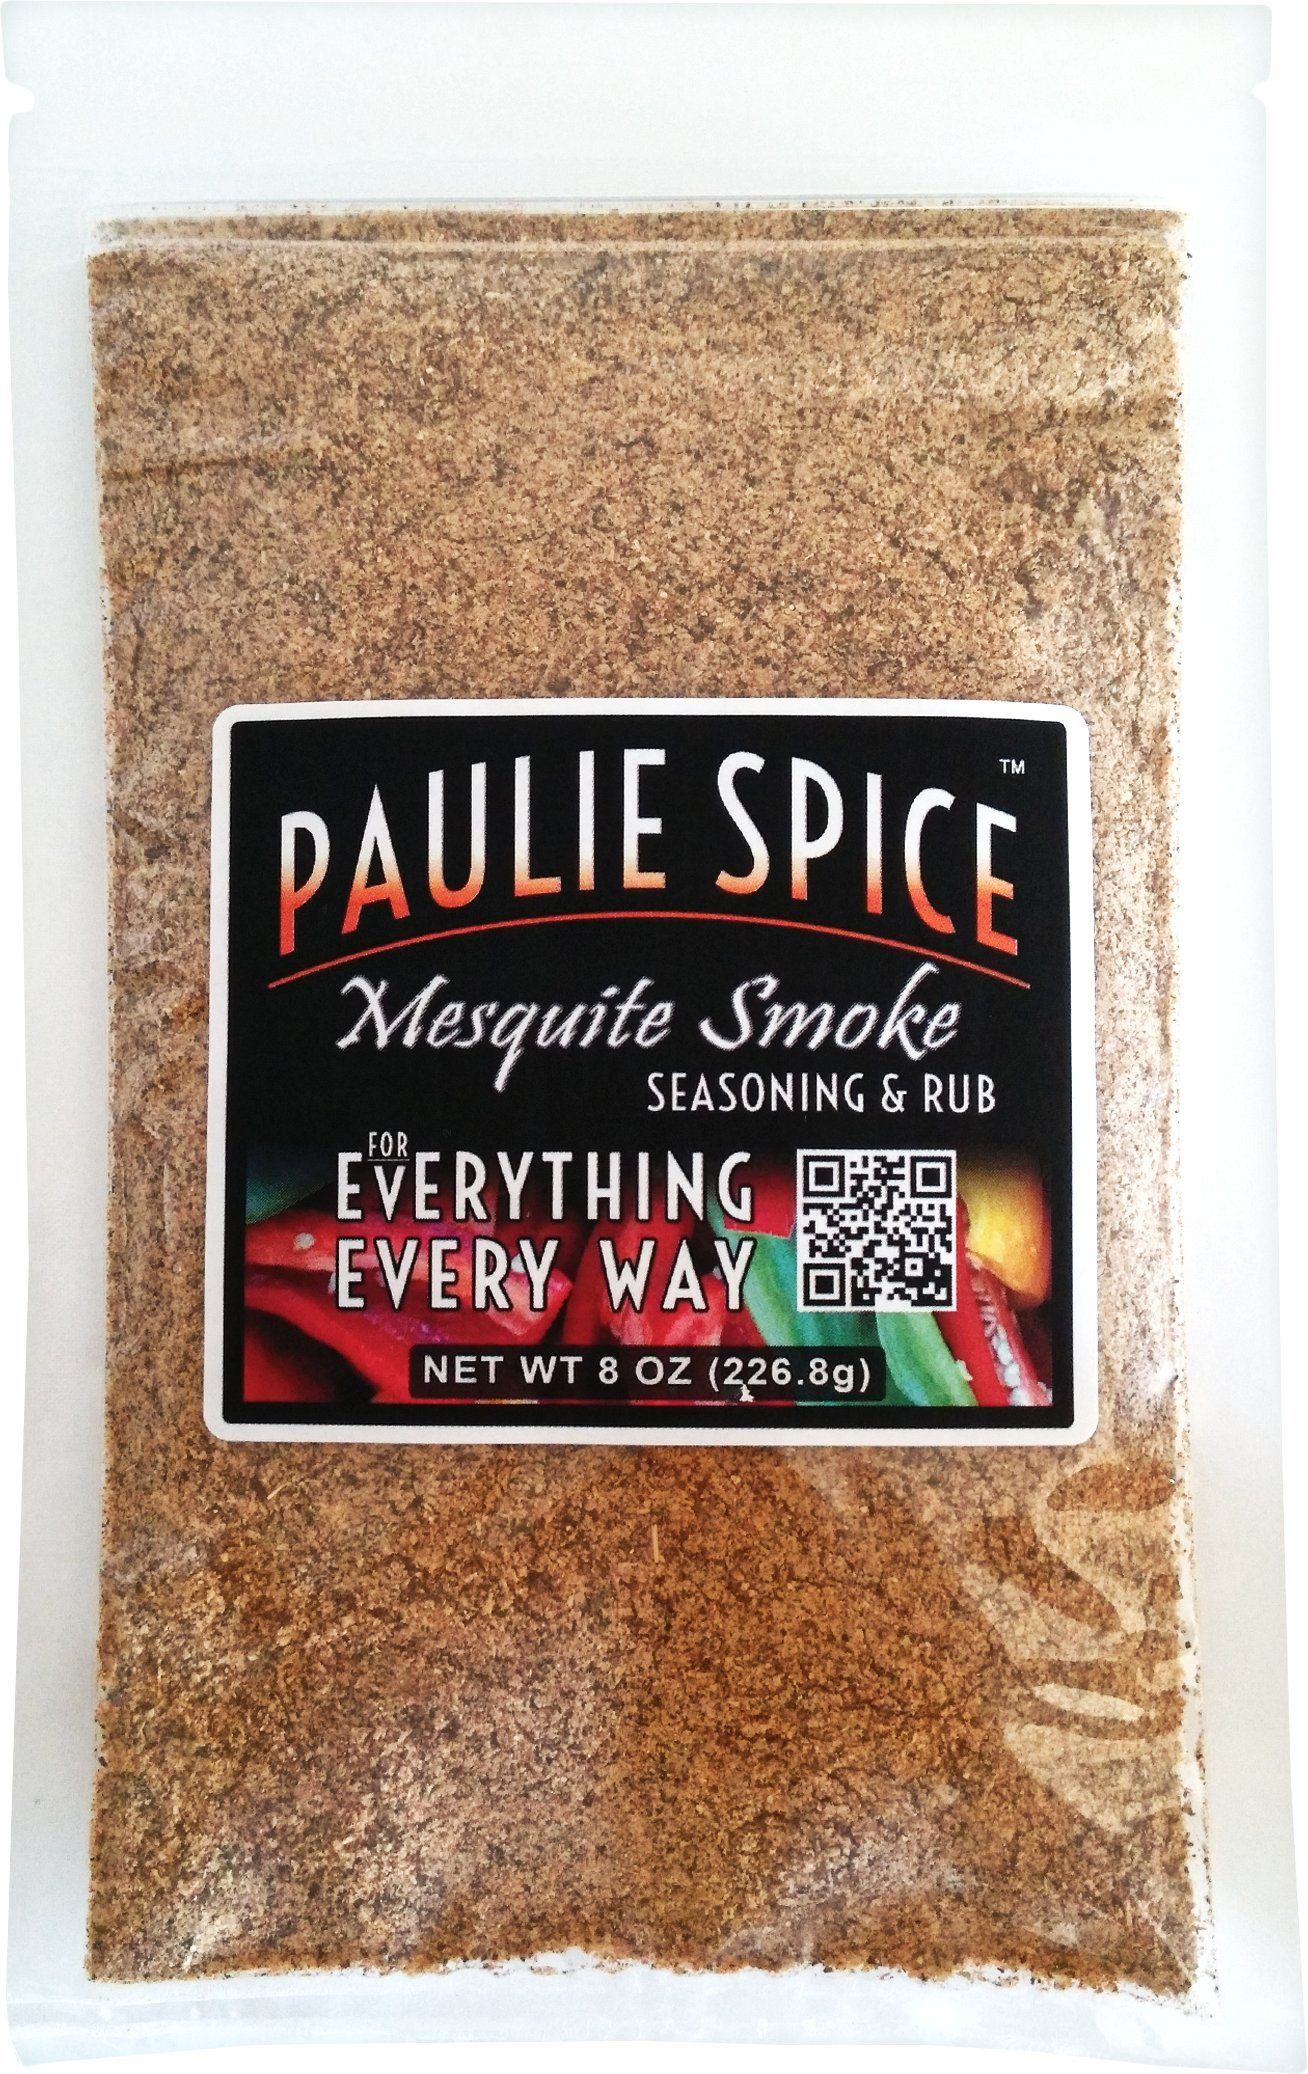 Paulie Spice : Sweet Mesquite Smoke BBQ Seasoning and Rub For: Steak, Ribs, Meat, Pork, Chicken, Wings, Salmon, Beef, Prime, Fish, Seafood, Grill, Barbecue, Smoked, Dry Rubs, Seasonings, Spices, 8 oz